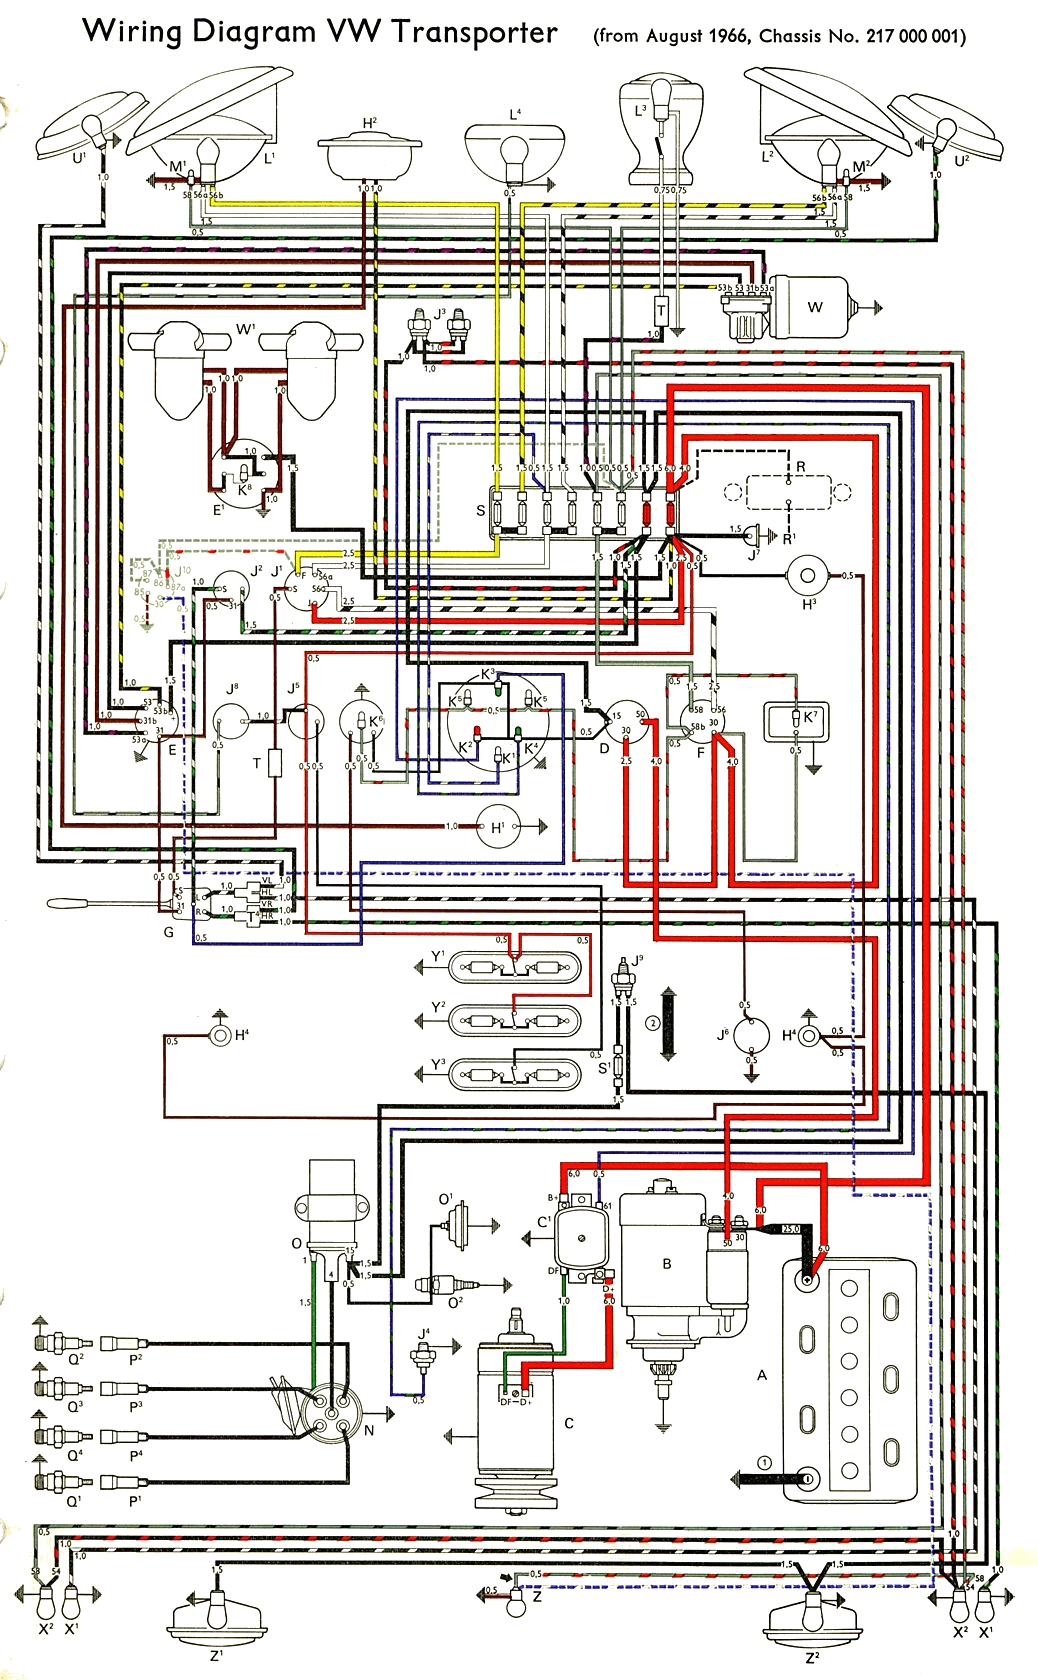 Famous Manx Wiring Diagram Basic Photos - The Best Electrical ...